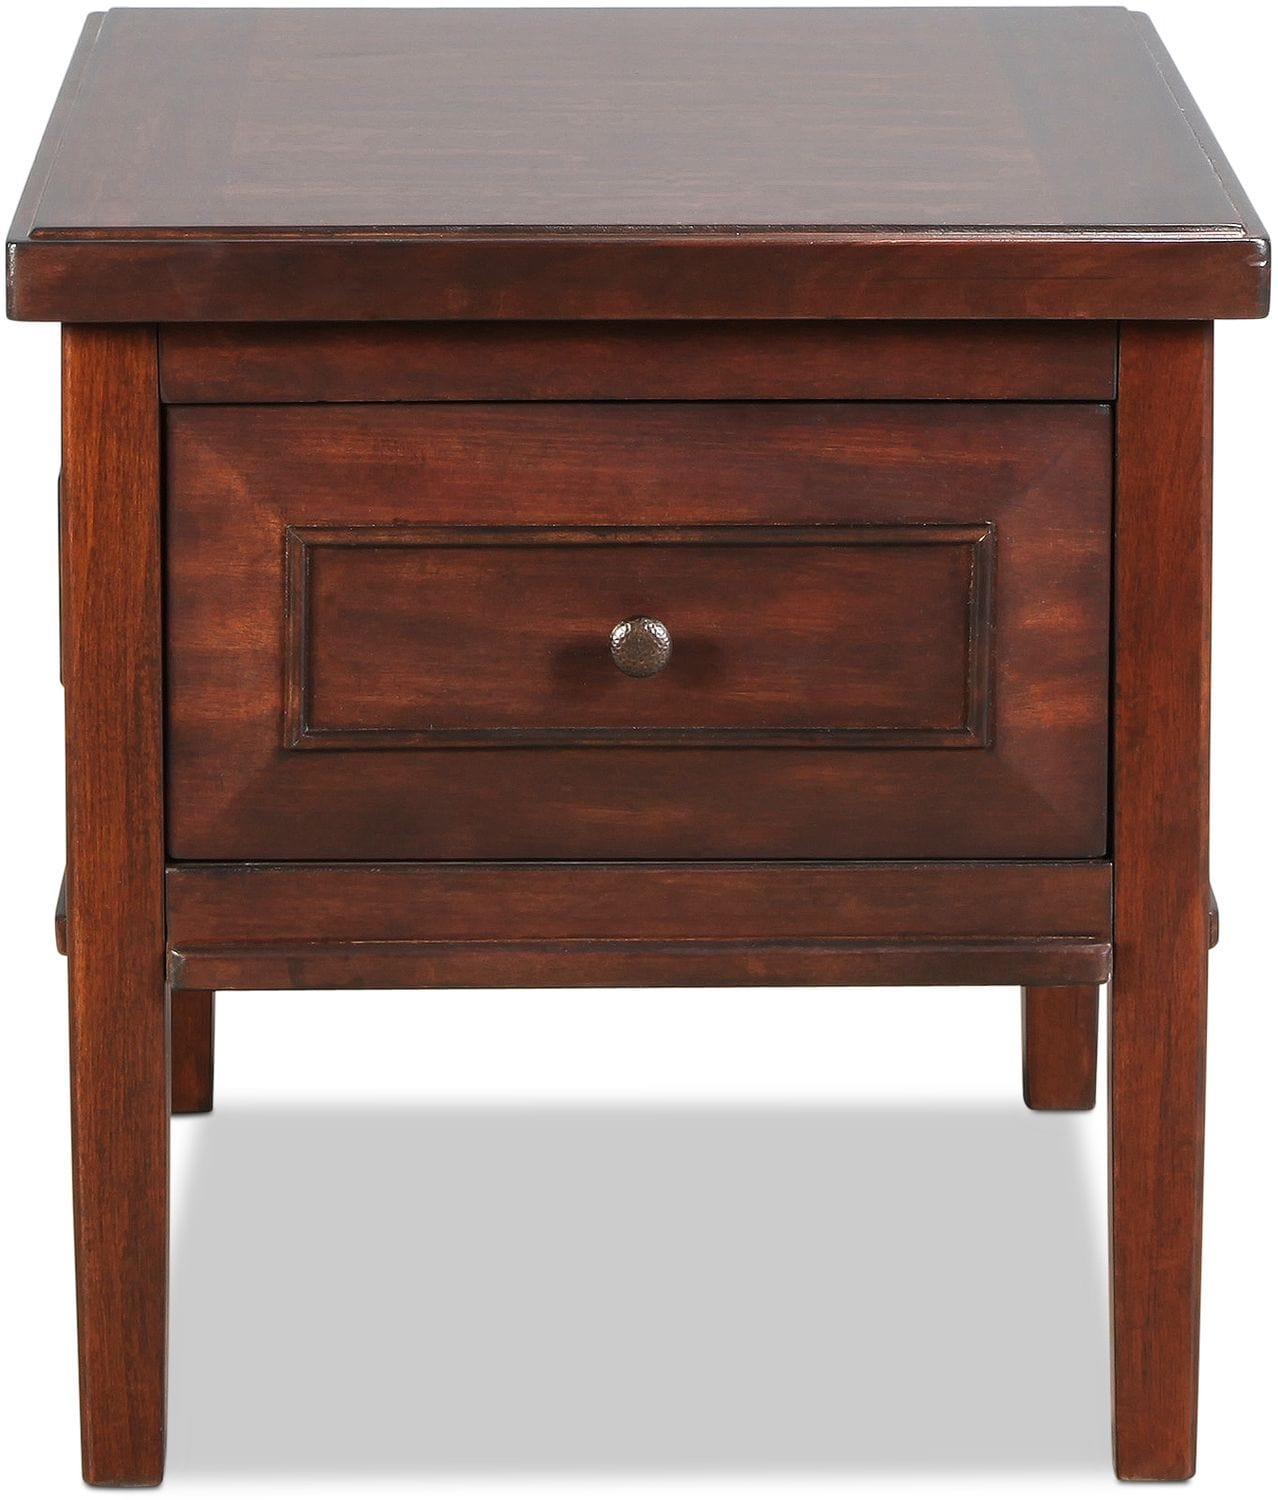 Bentworth End Table - Rustic Brown